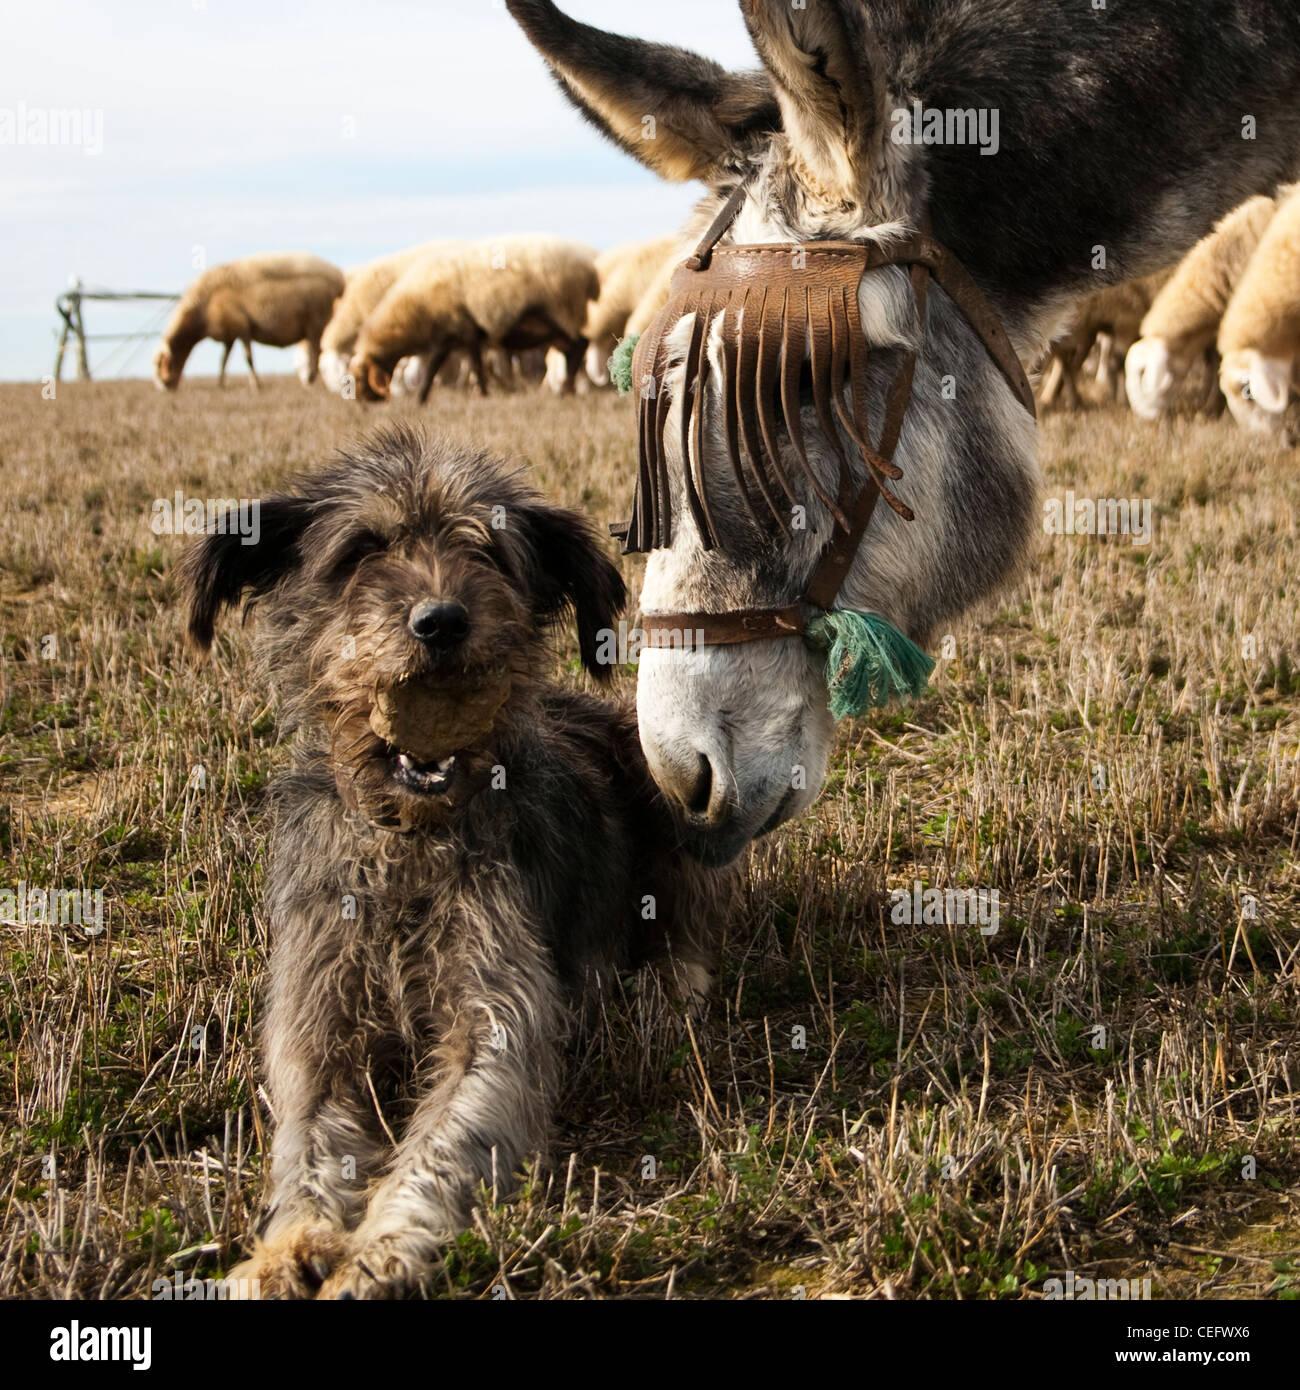 A donkey and a dog, with a stone in his mouth, plays together. A sheep flock grazes behind them. Beauty and bucolic Stock Photo